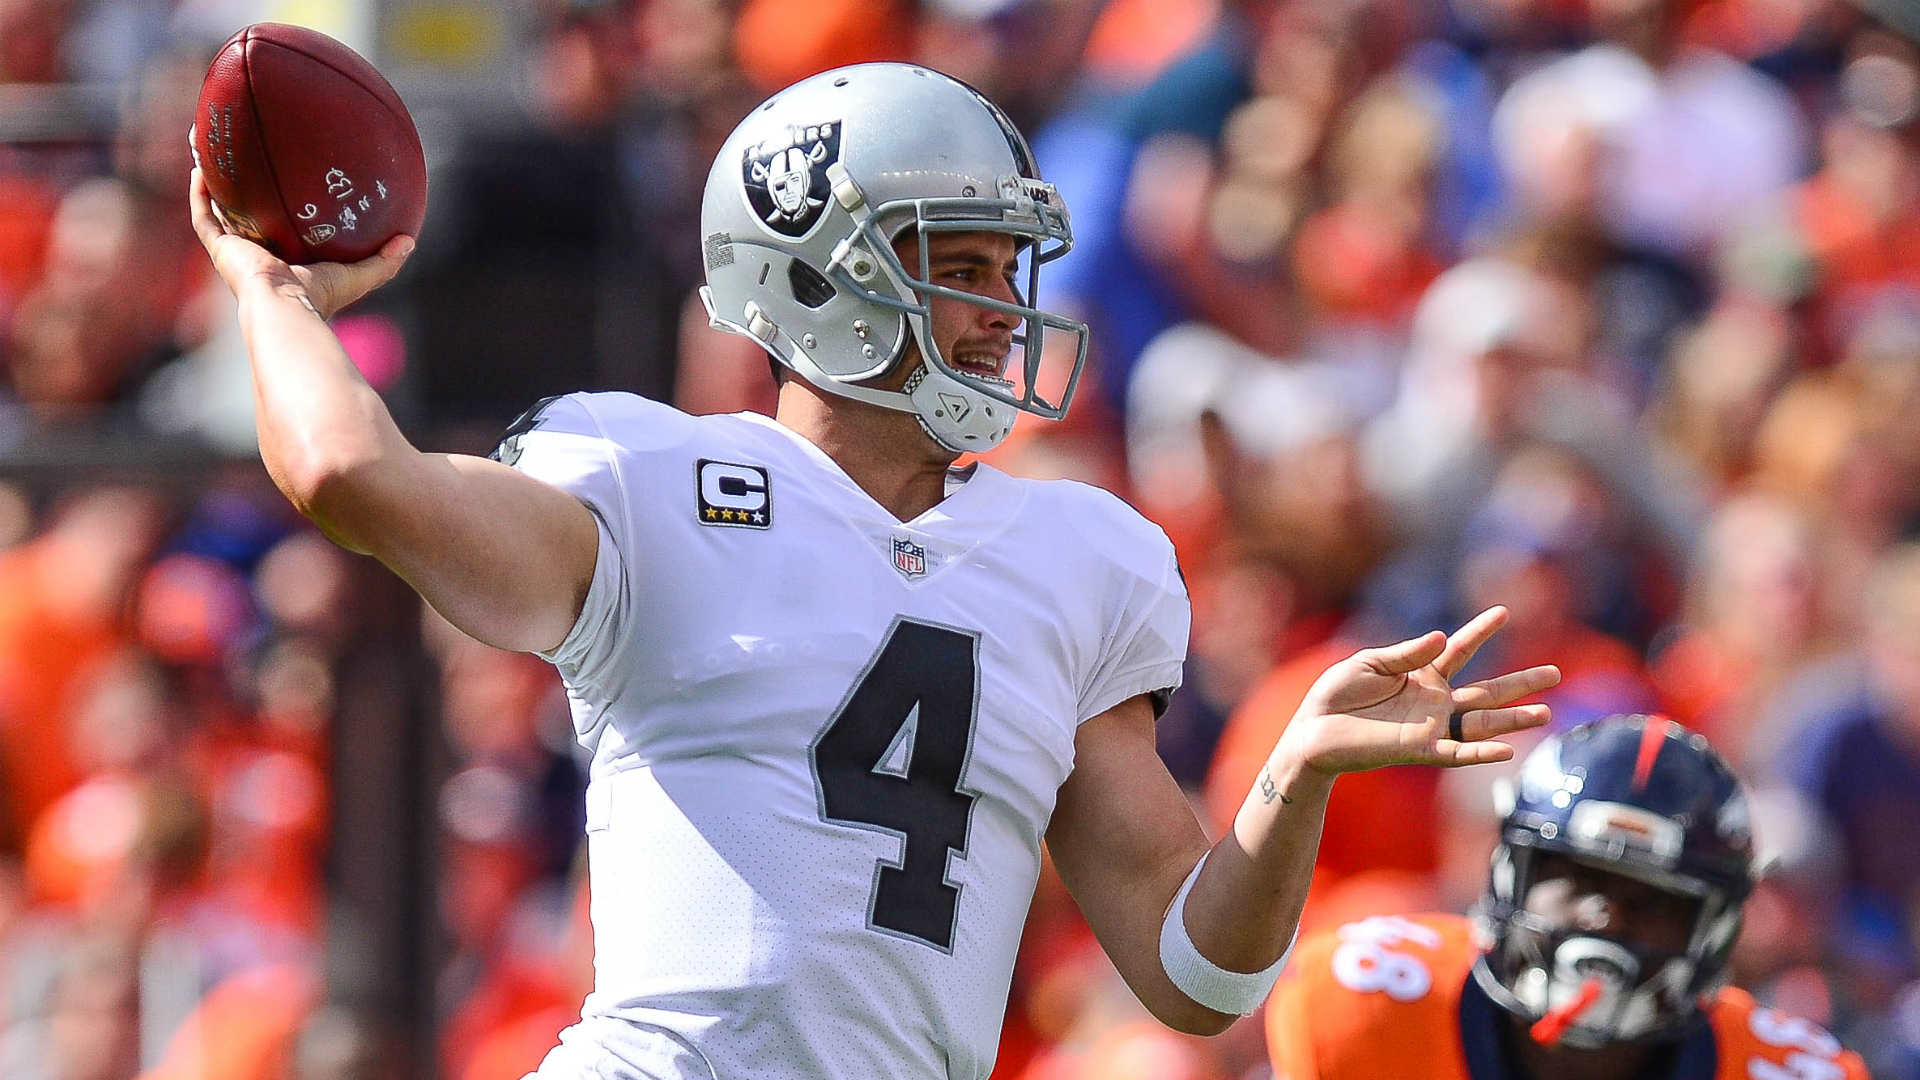 NFL Draft 2019: Raiders likely won't take Derek Carr's replacement in the first round, report says